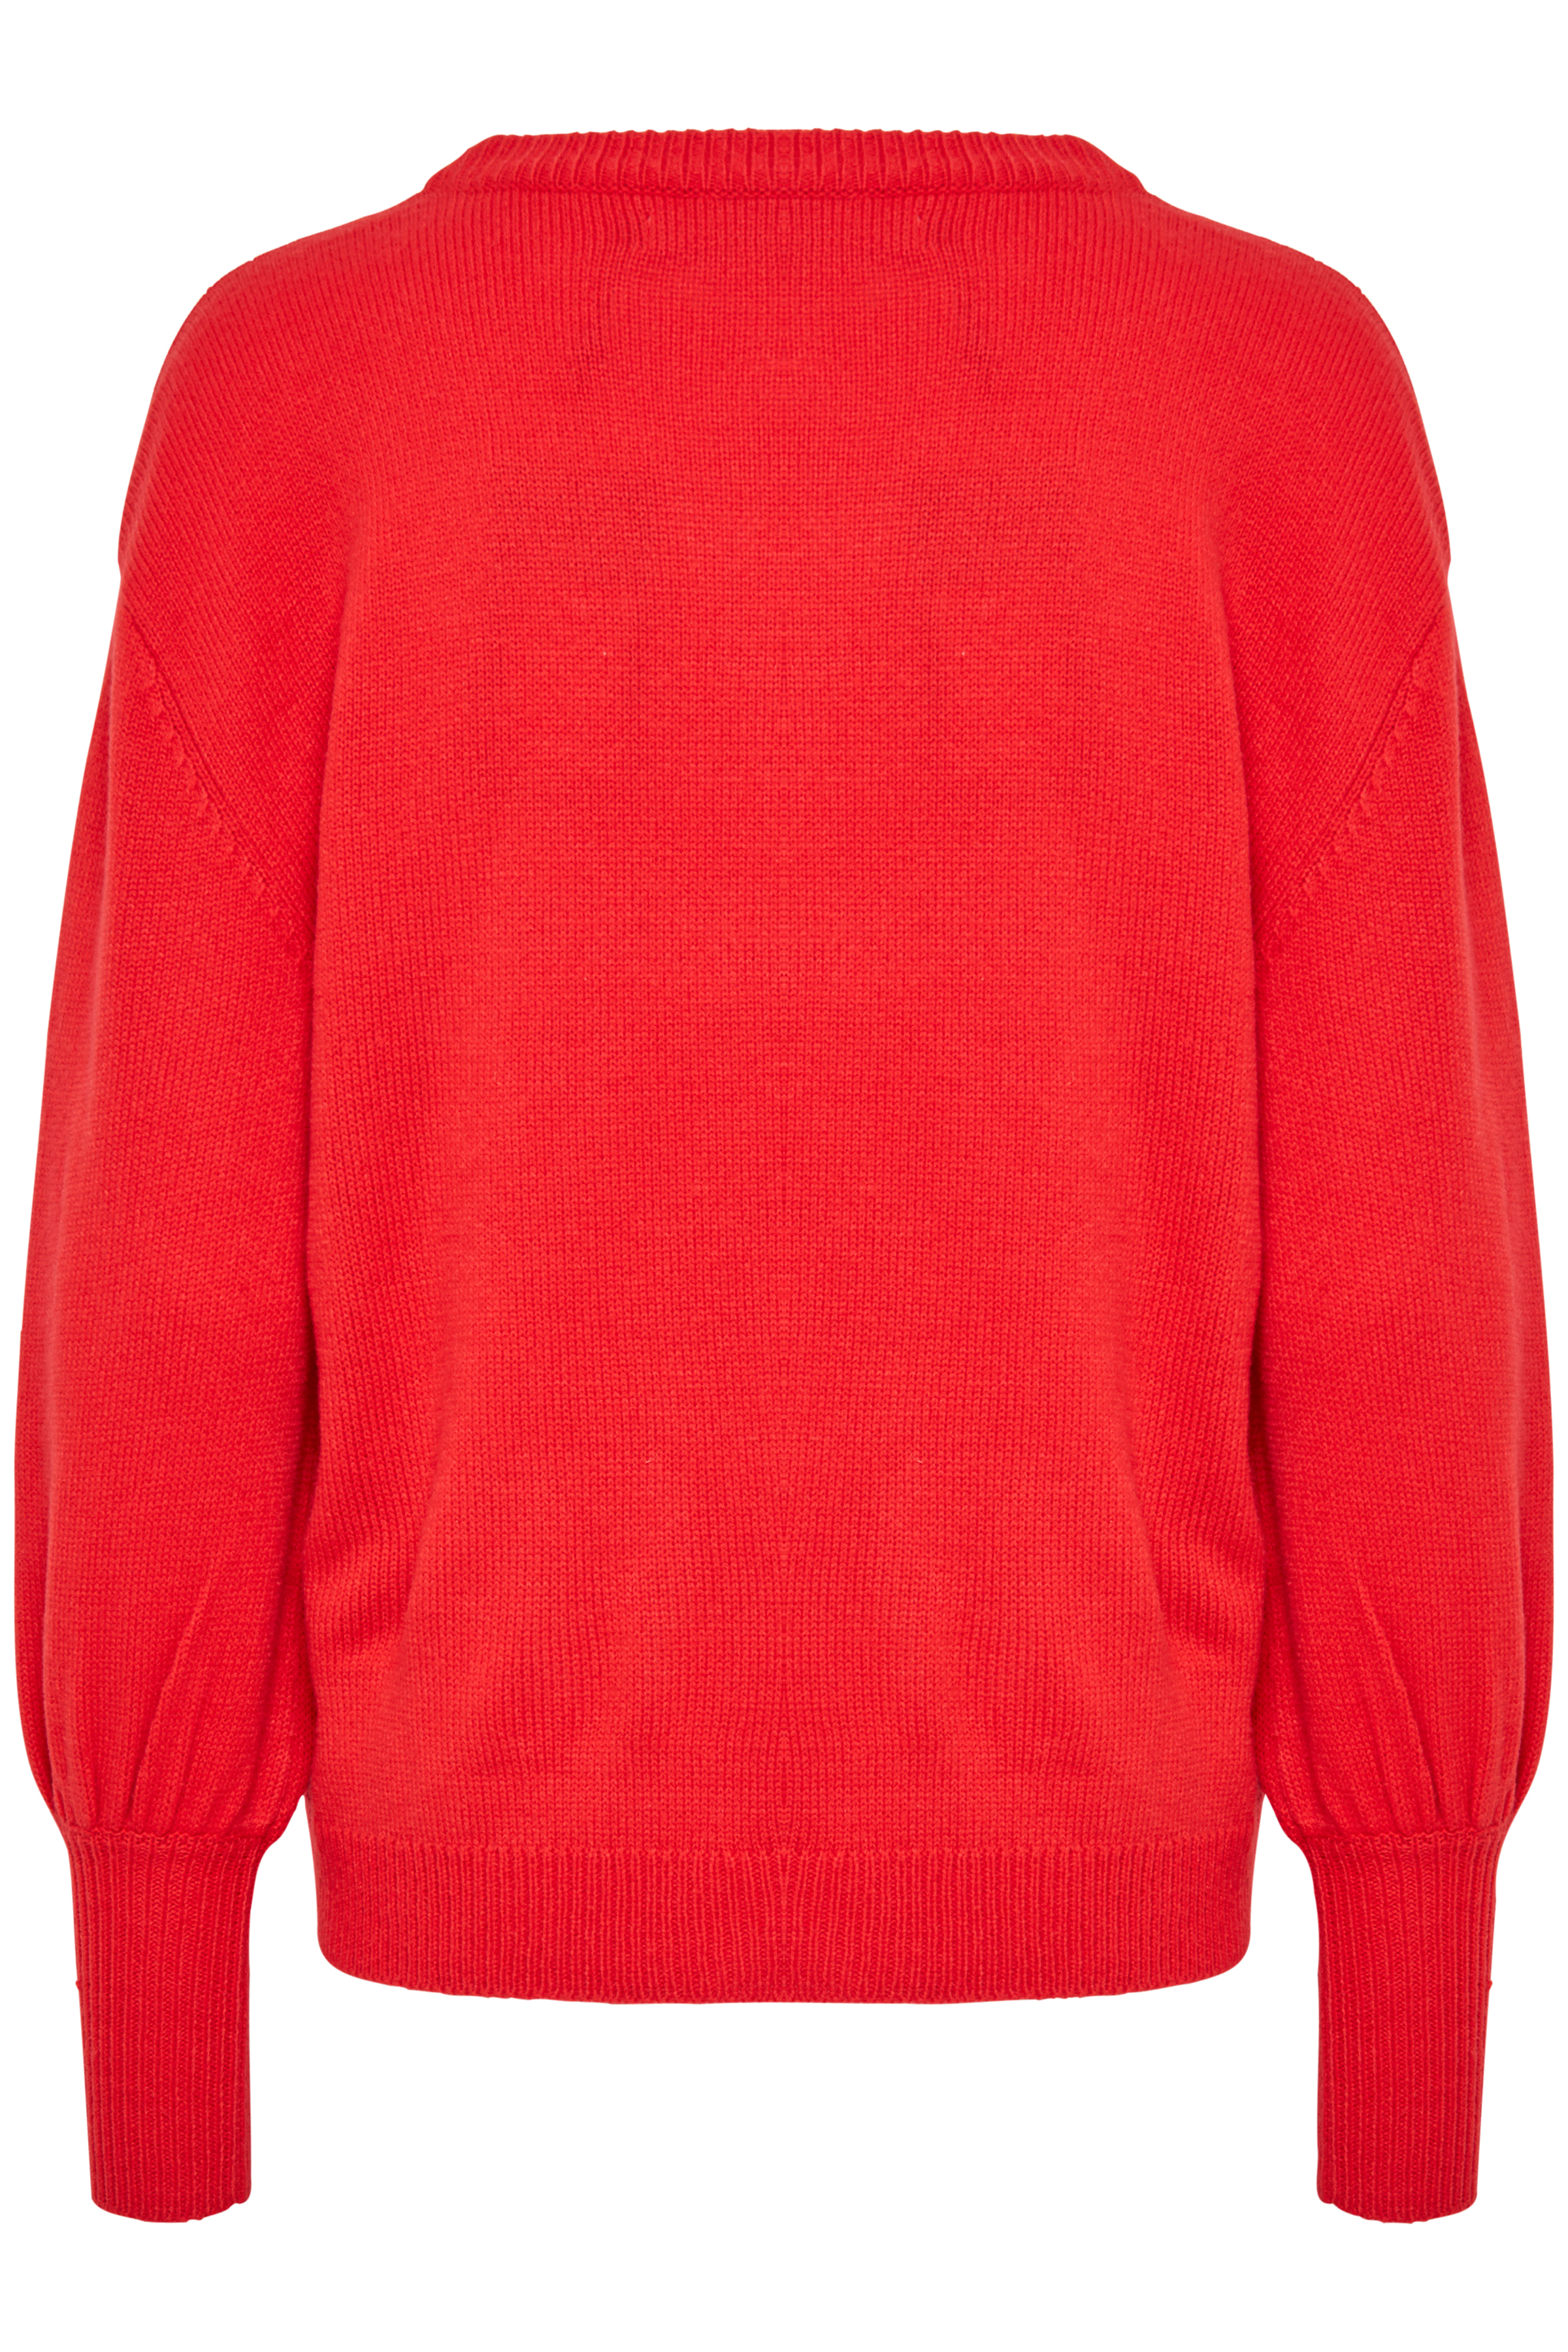 Chinese Red combi 2 Strikpullover fra b.young – Køb Chinese Red combi 2 Strikpullover fra str. XS-XXL her